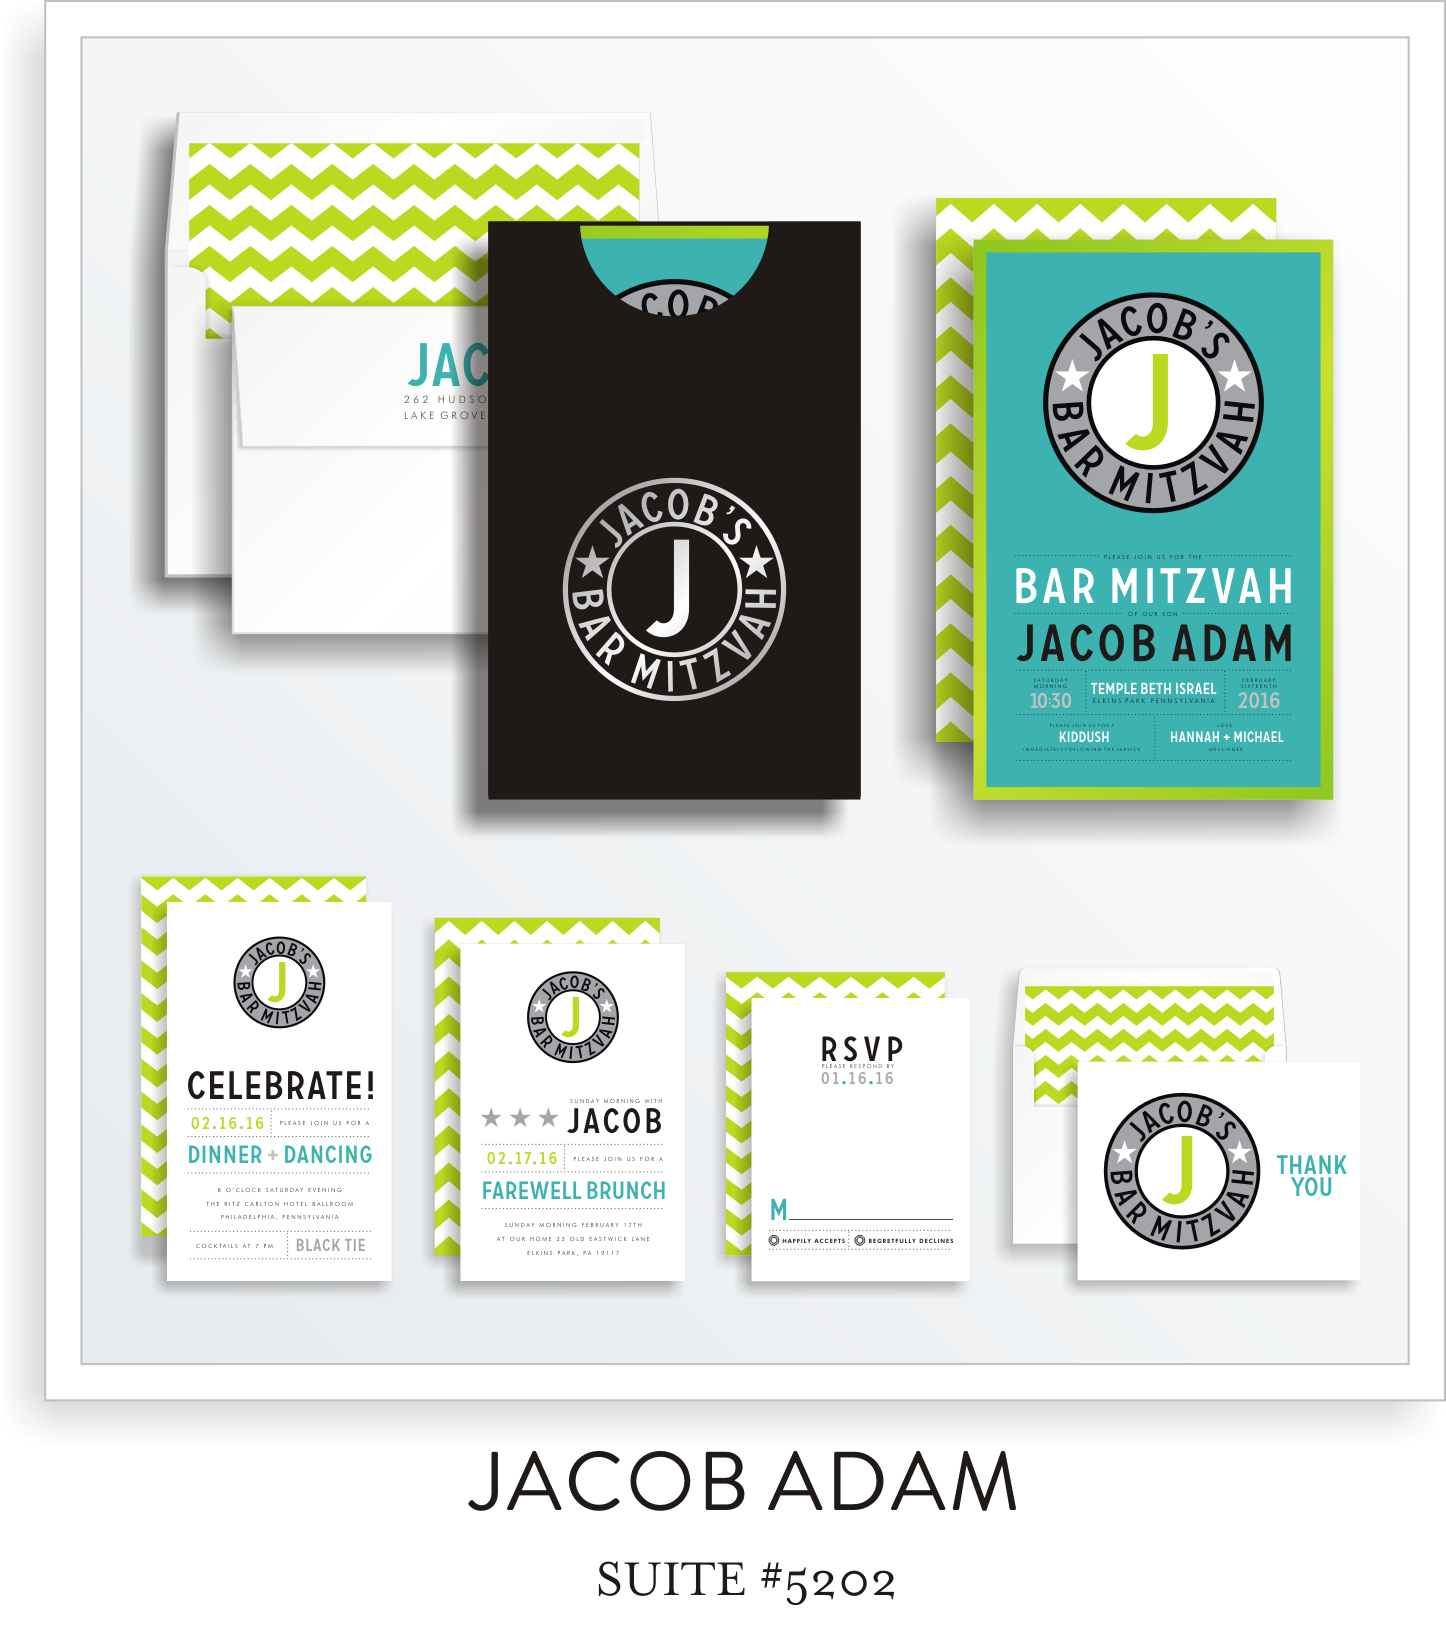 Copy of <a href=/bar-mitzvah-invitations-5202>Suite Details→</a><strong><a href=/jacob-adam-in-colors>see more colors→</a></strong>